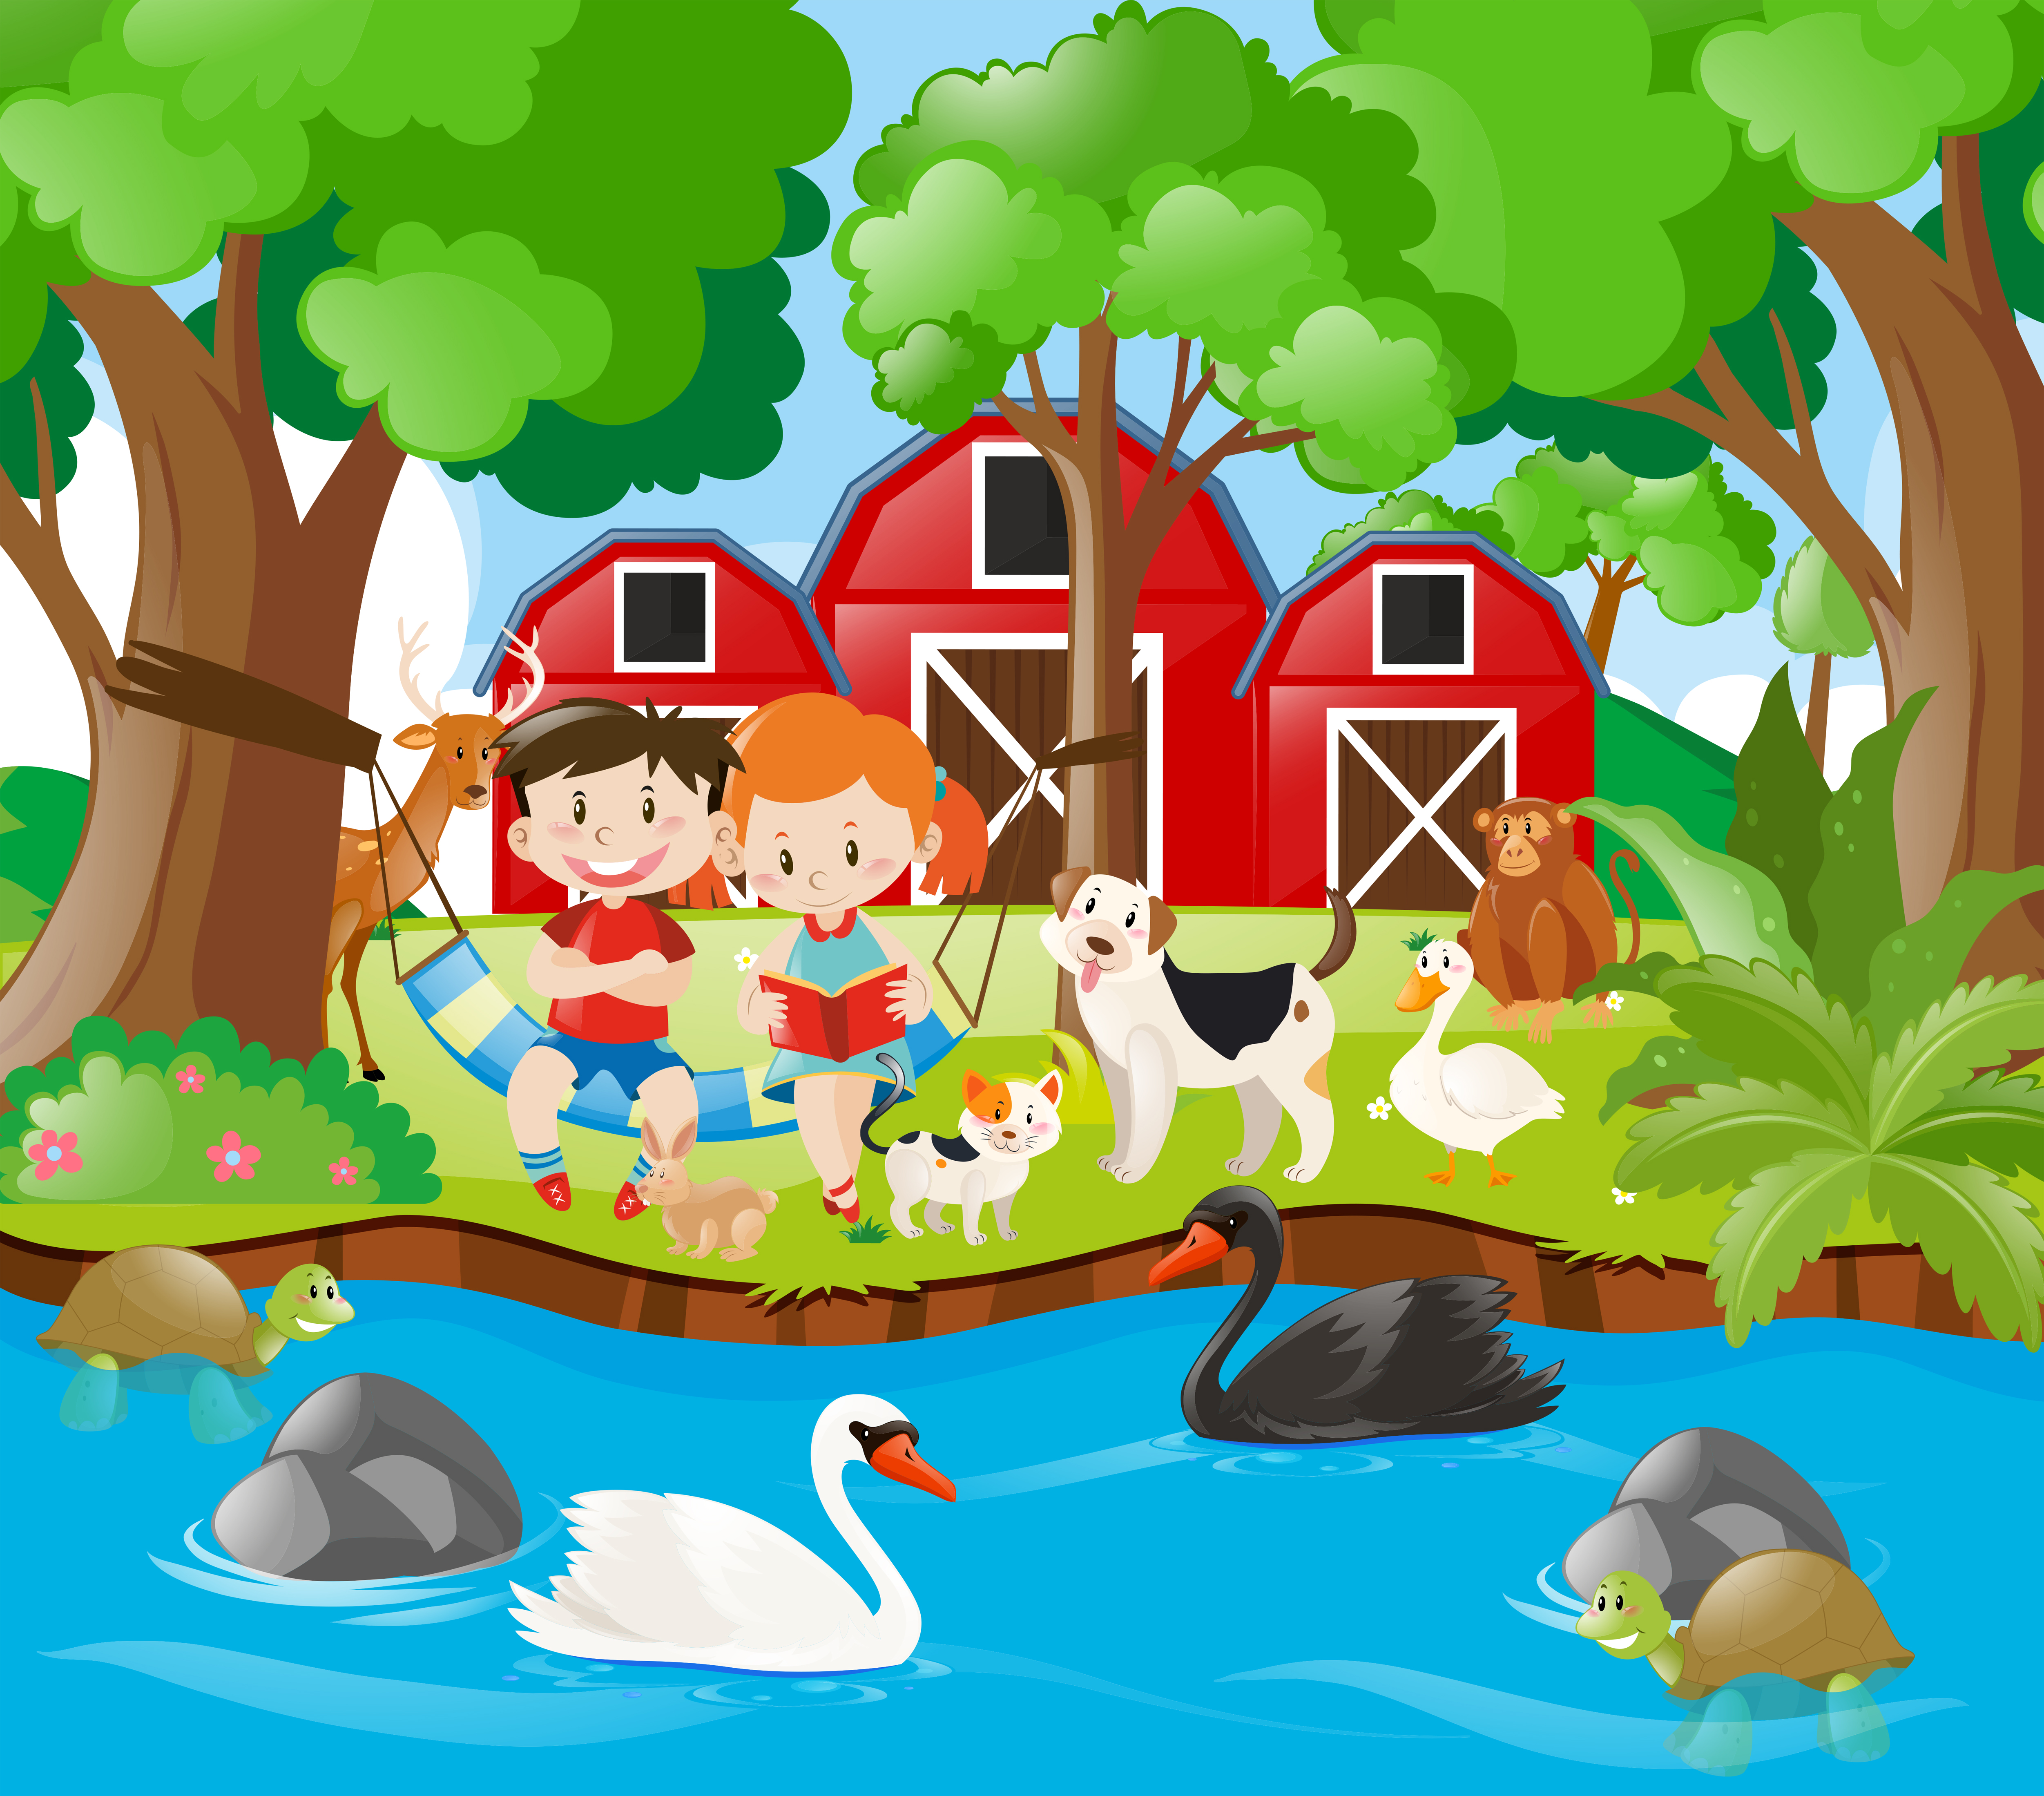 Farm scene with kids reading by the river - Download Free ...Farm Scene Clip Art Pictures